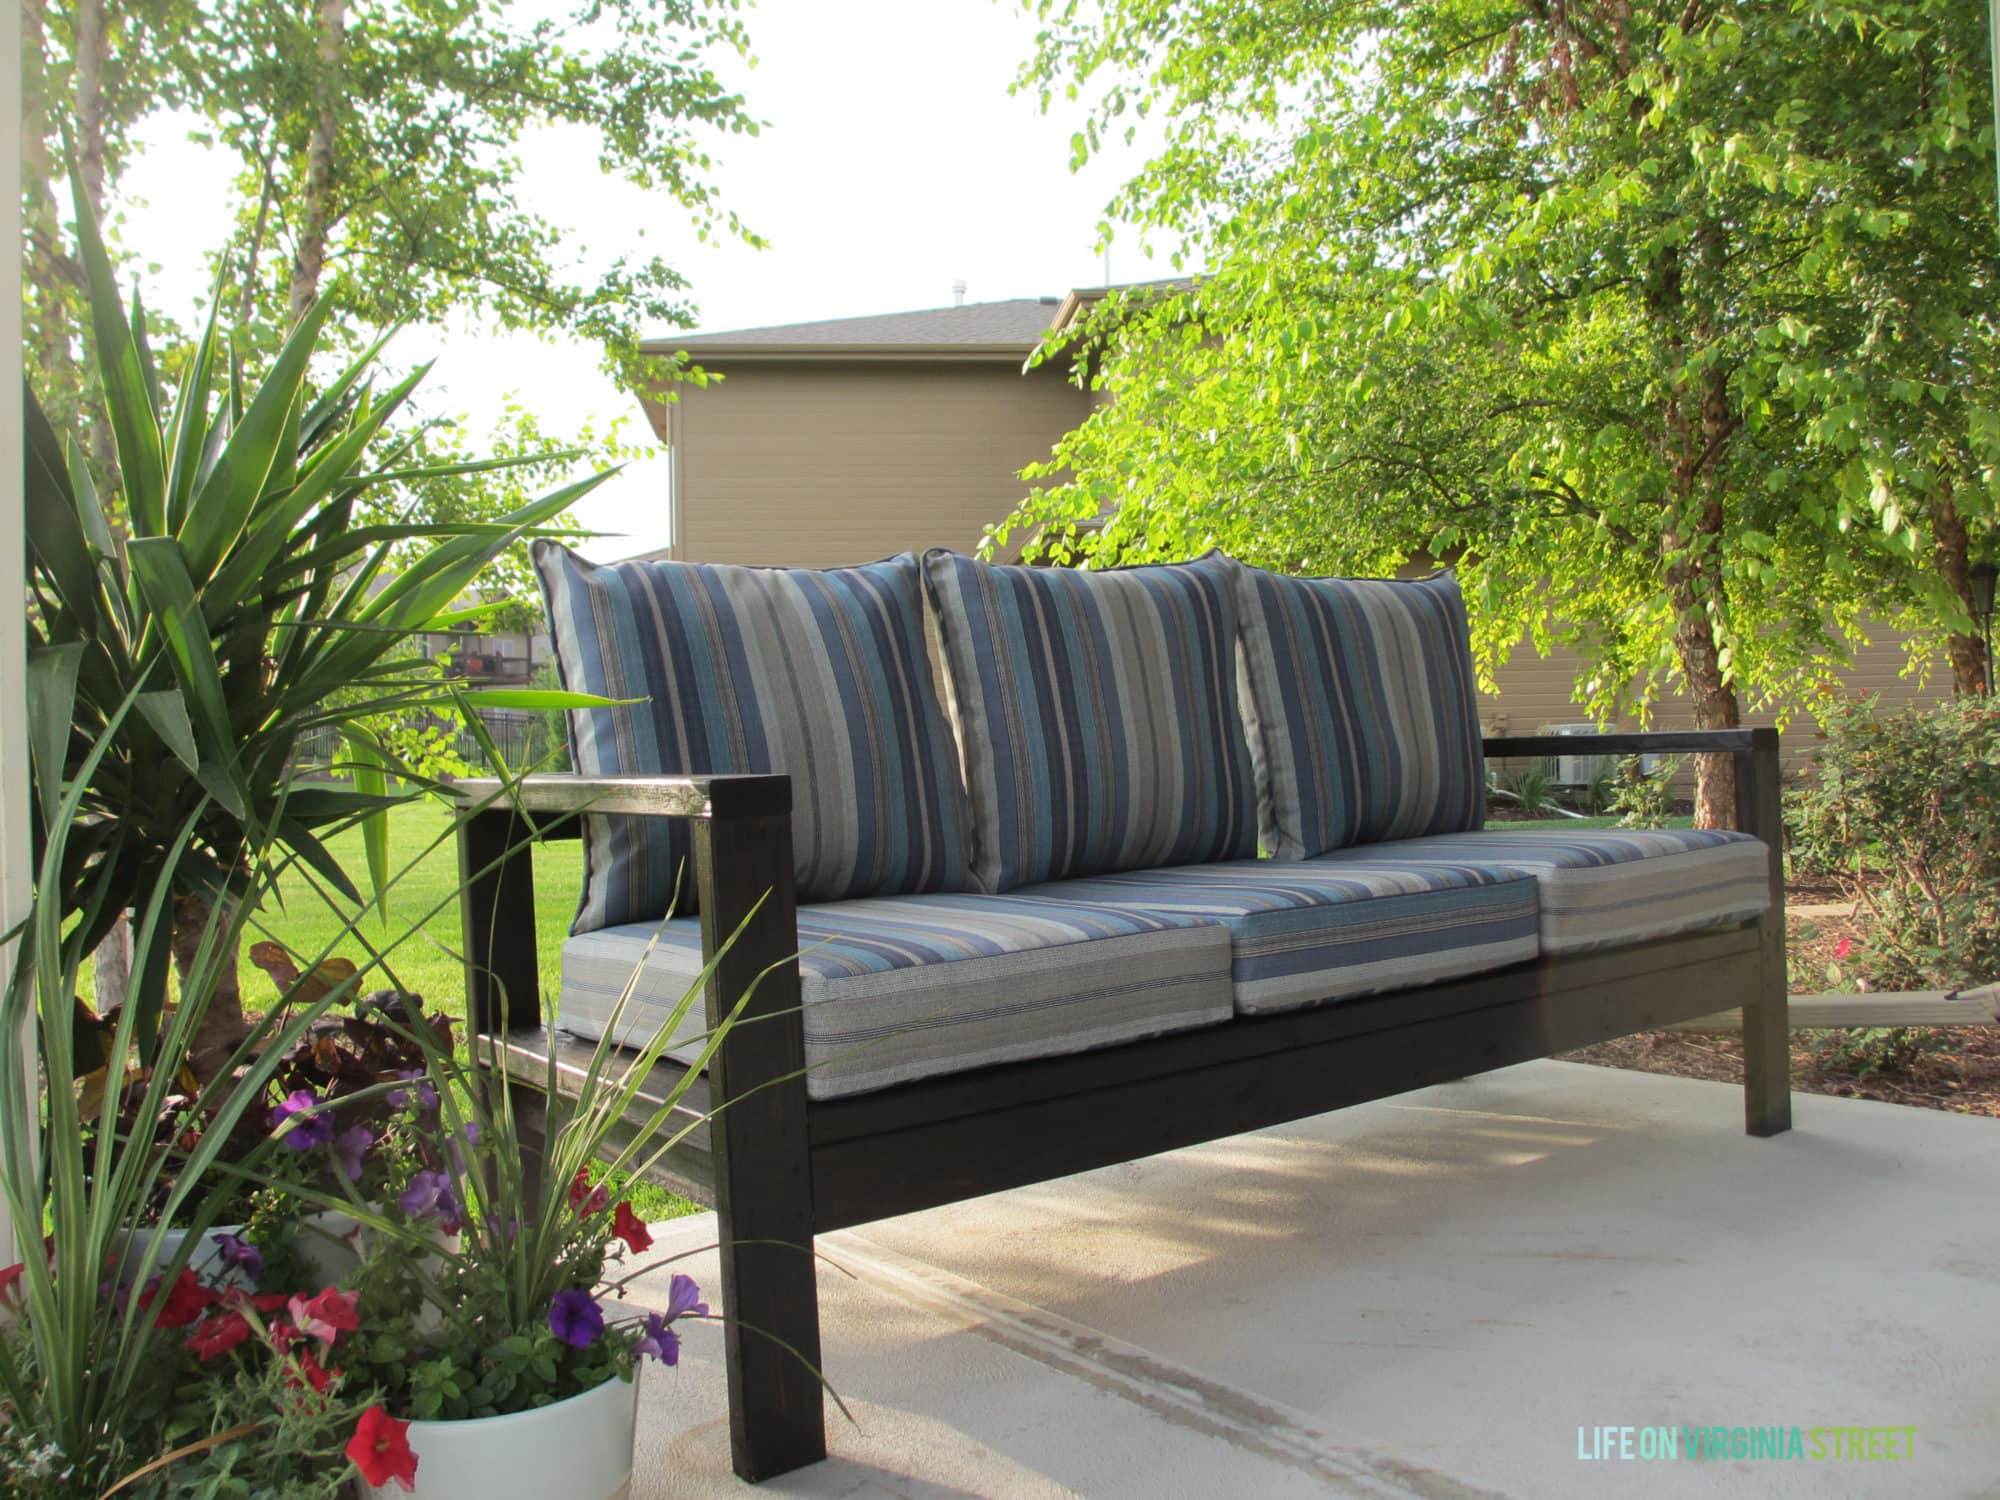 How to build a diy outdoor couch life on virginia street for Patio furniture designs plans